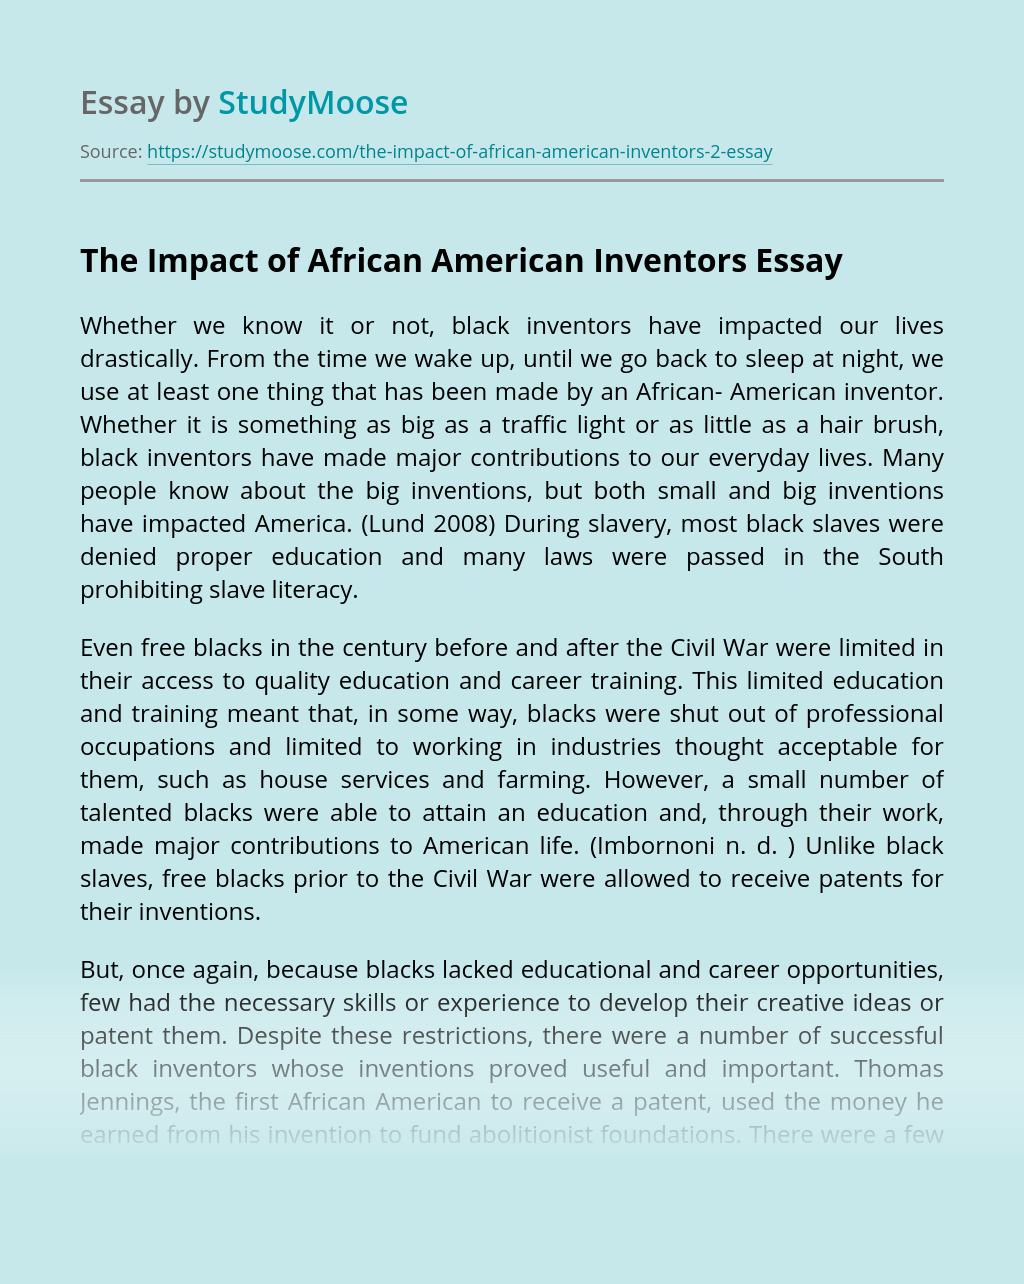 The Impact of African American Inventors